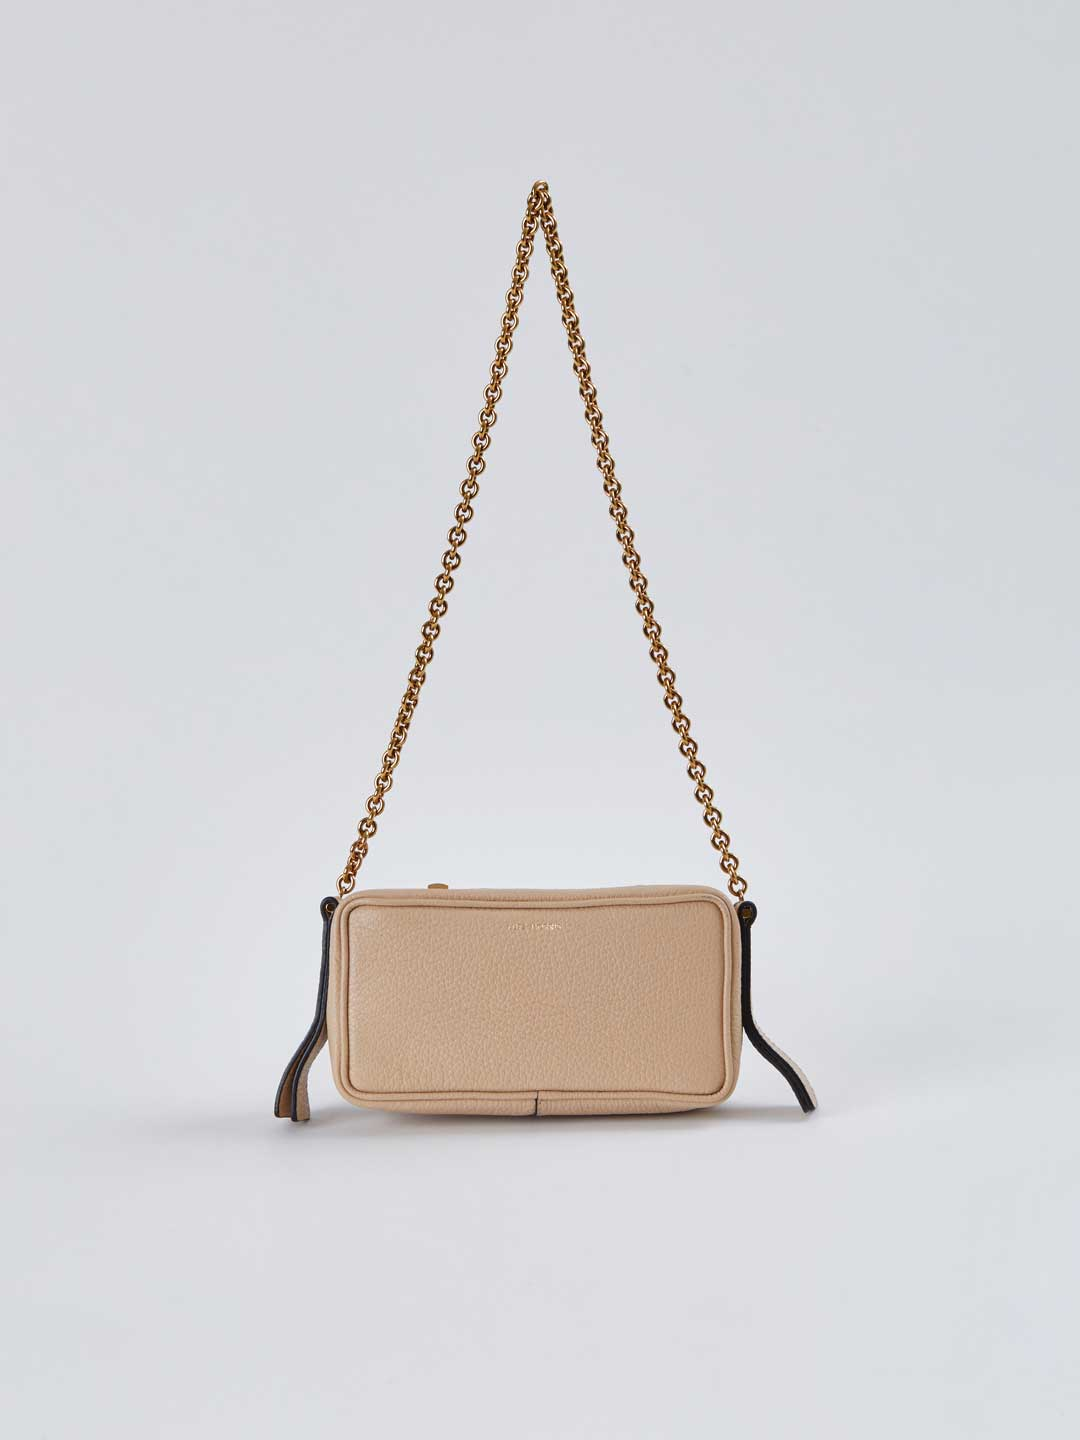 Elise Small Shoulder Chain Bag - Beige